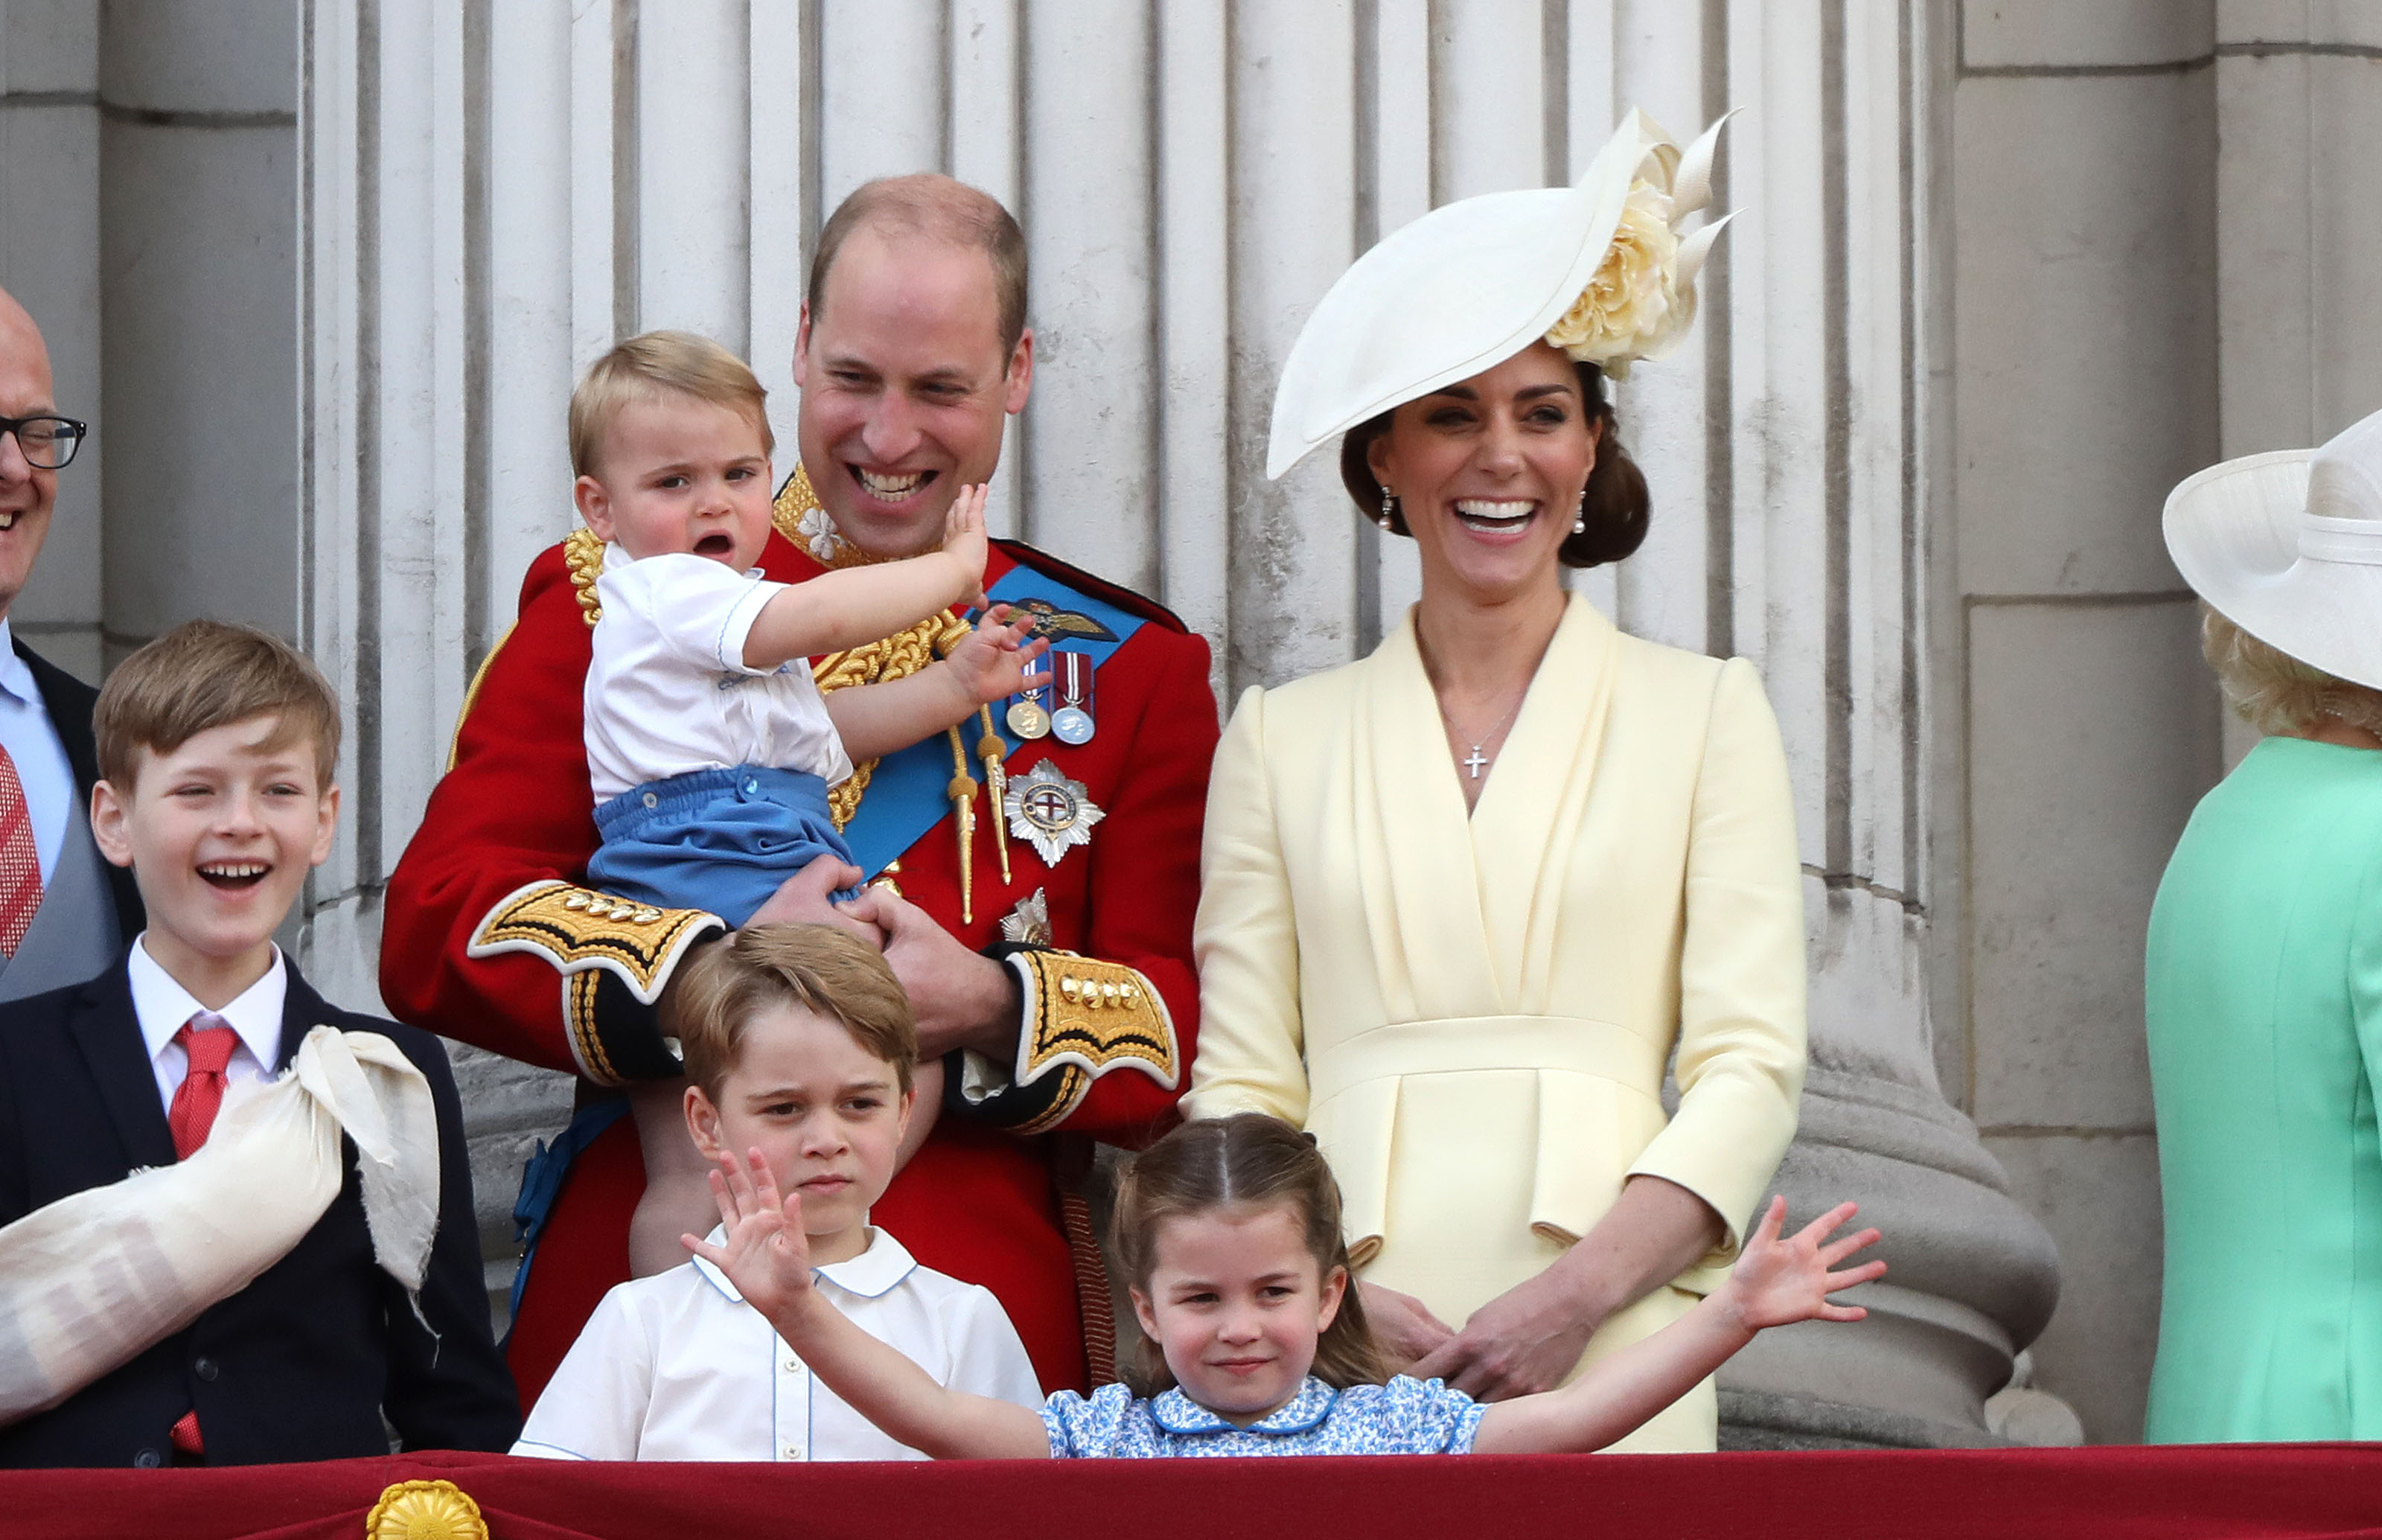 United Kingdom royals wow Twitter fans with family pic on Christmas